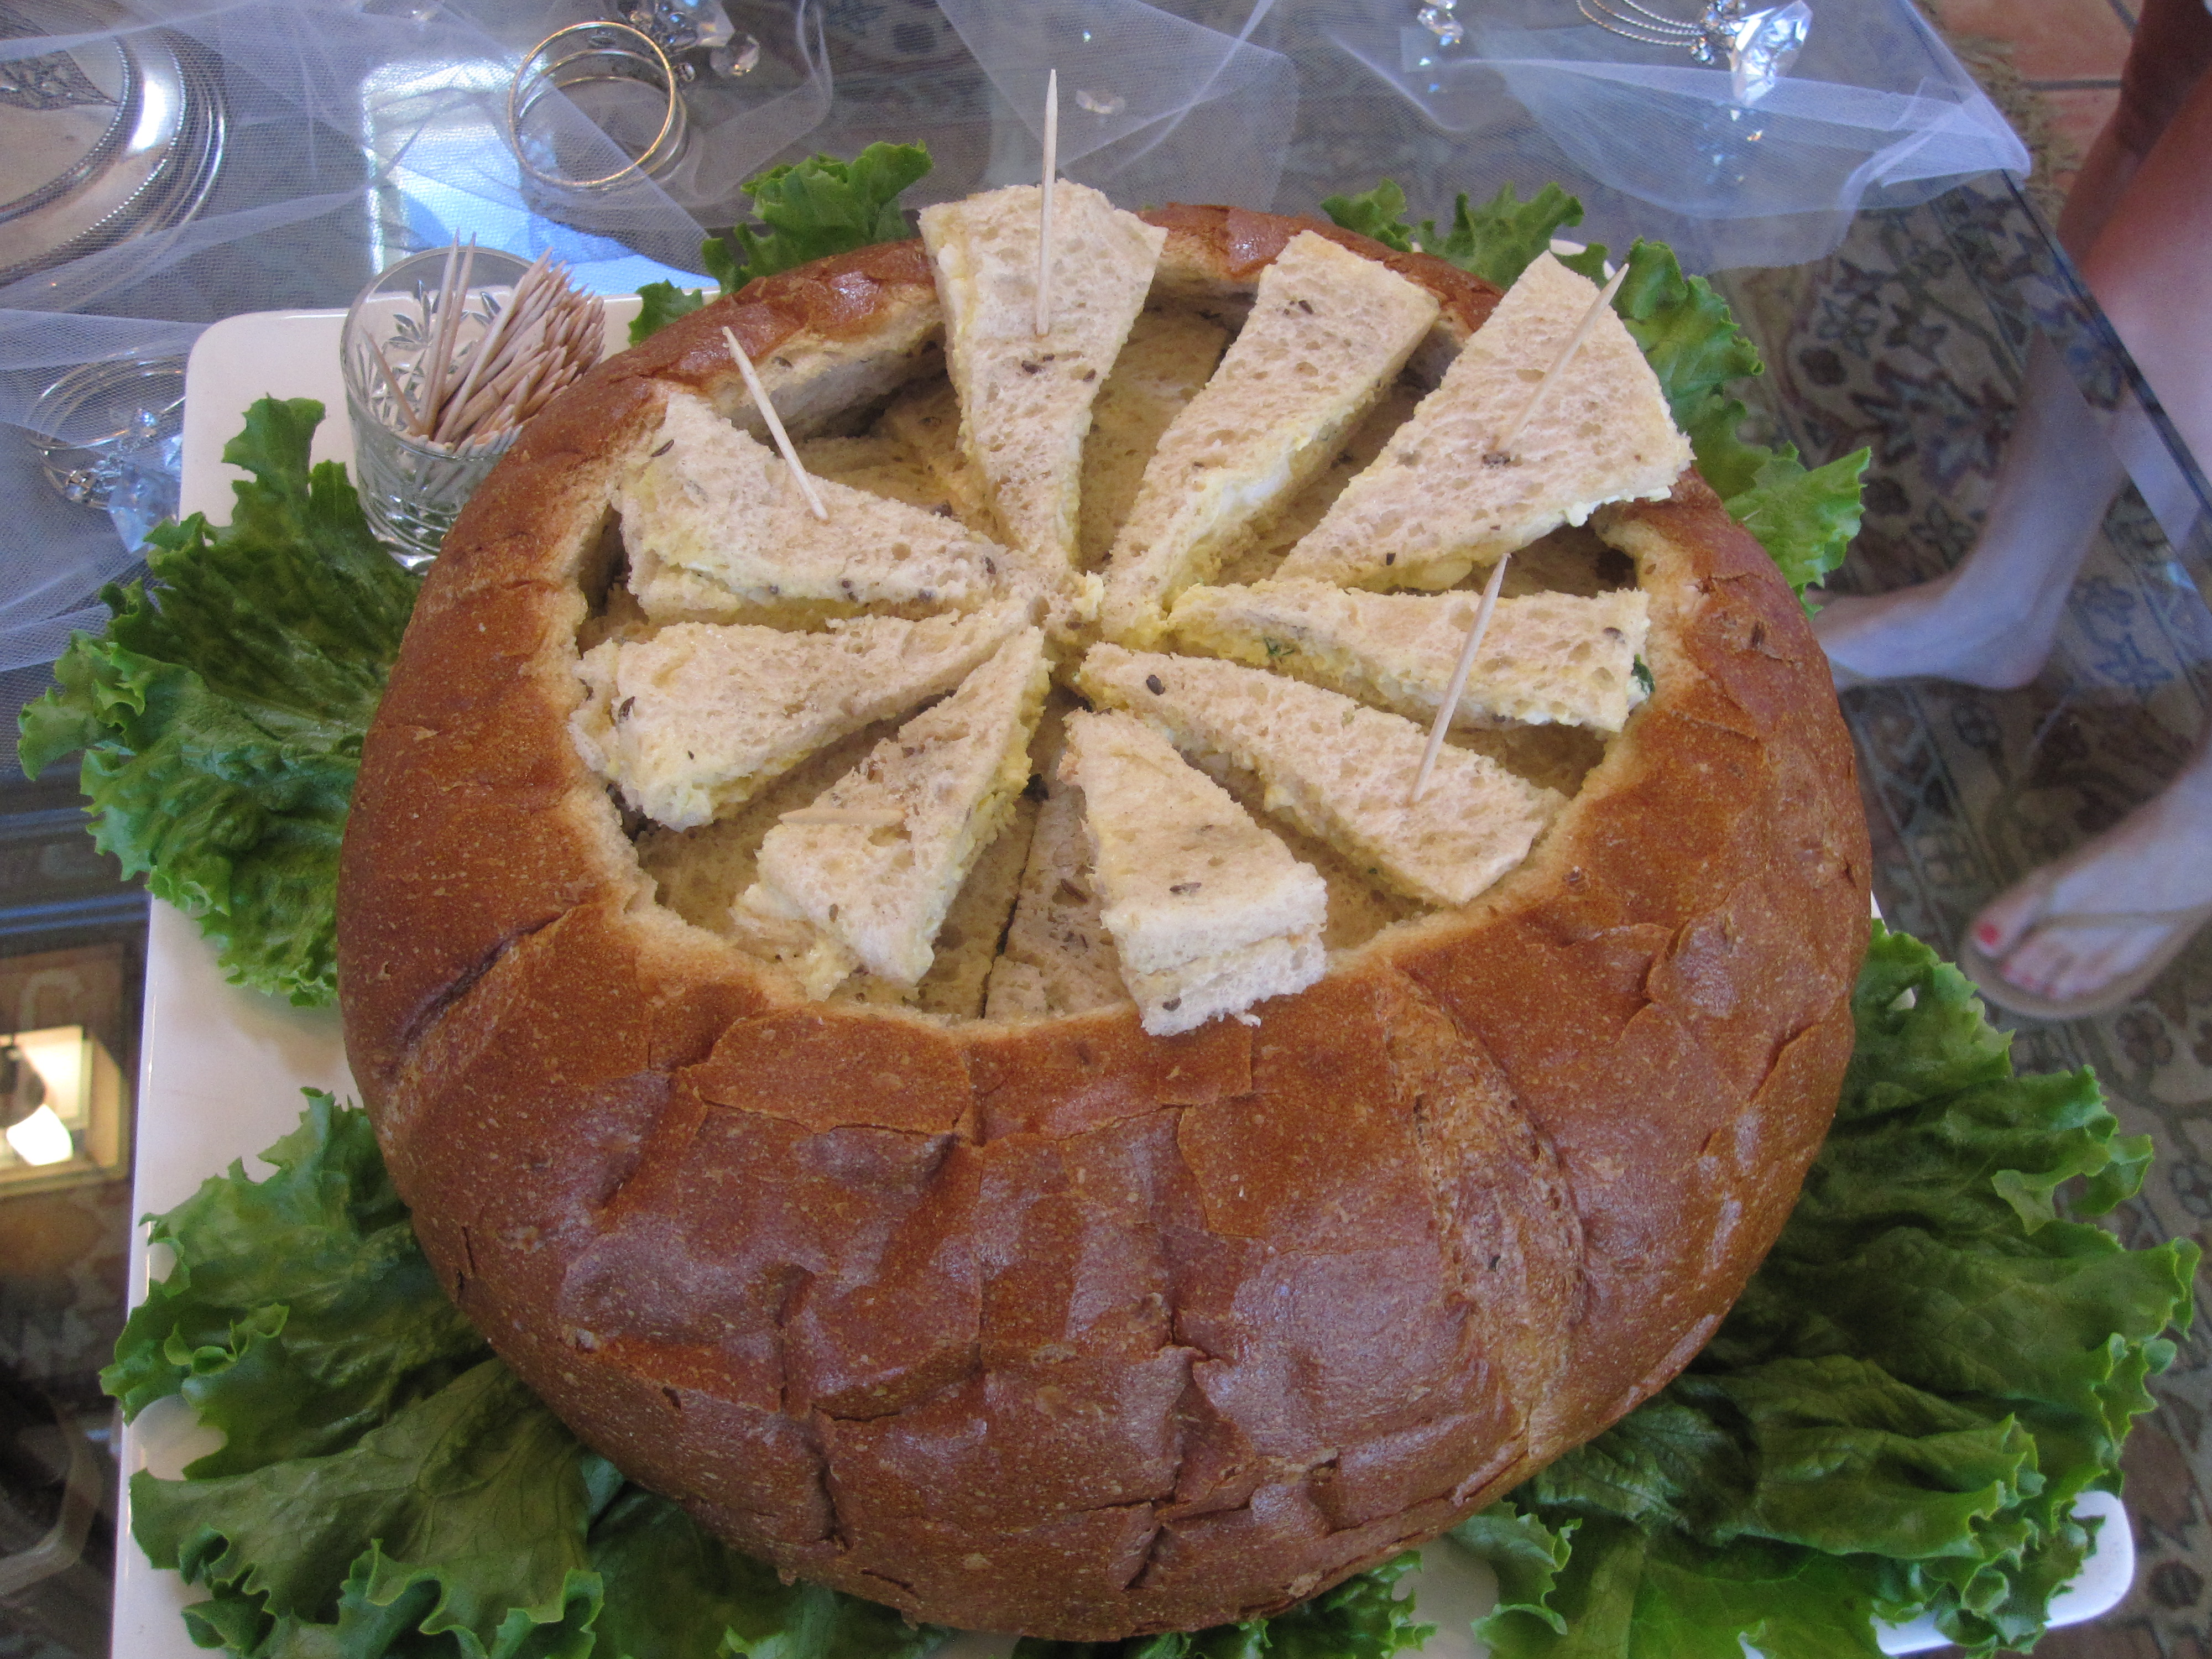 Delicate egg salad and diced mushroom sandwiches were placed inside a hollowed-out bread bowl. It made for a fun presentation.